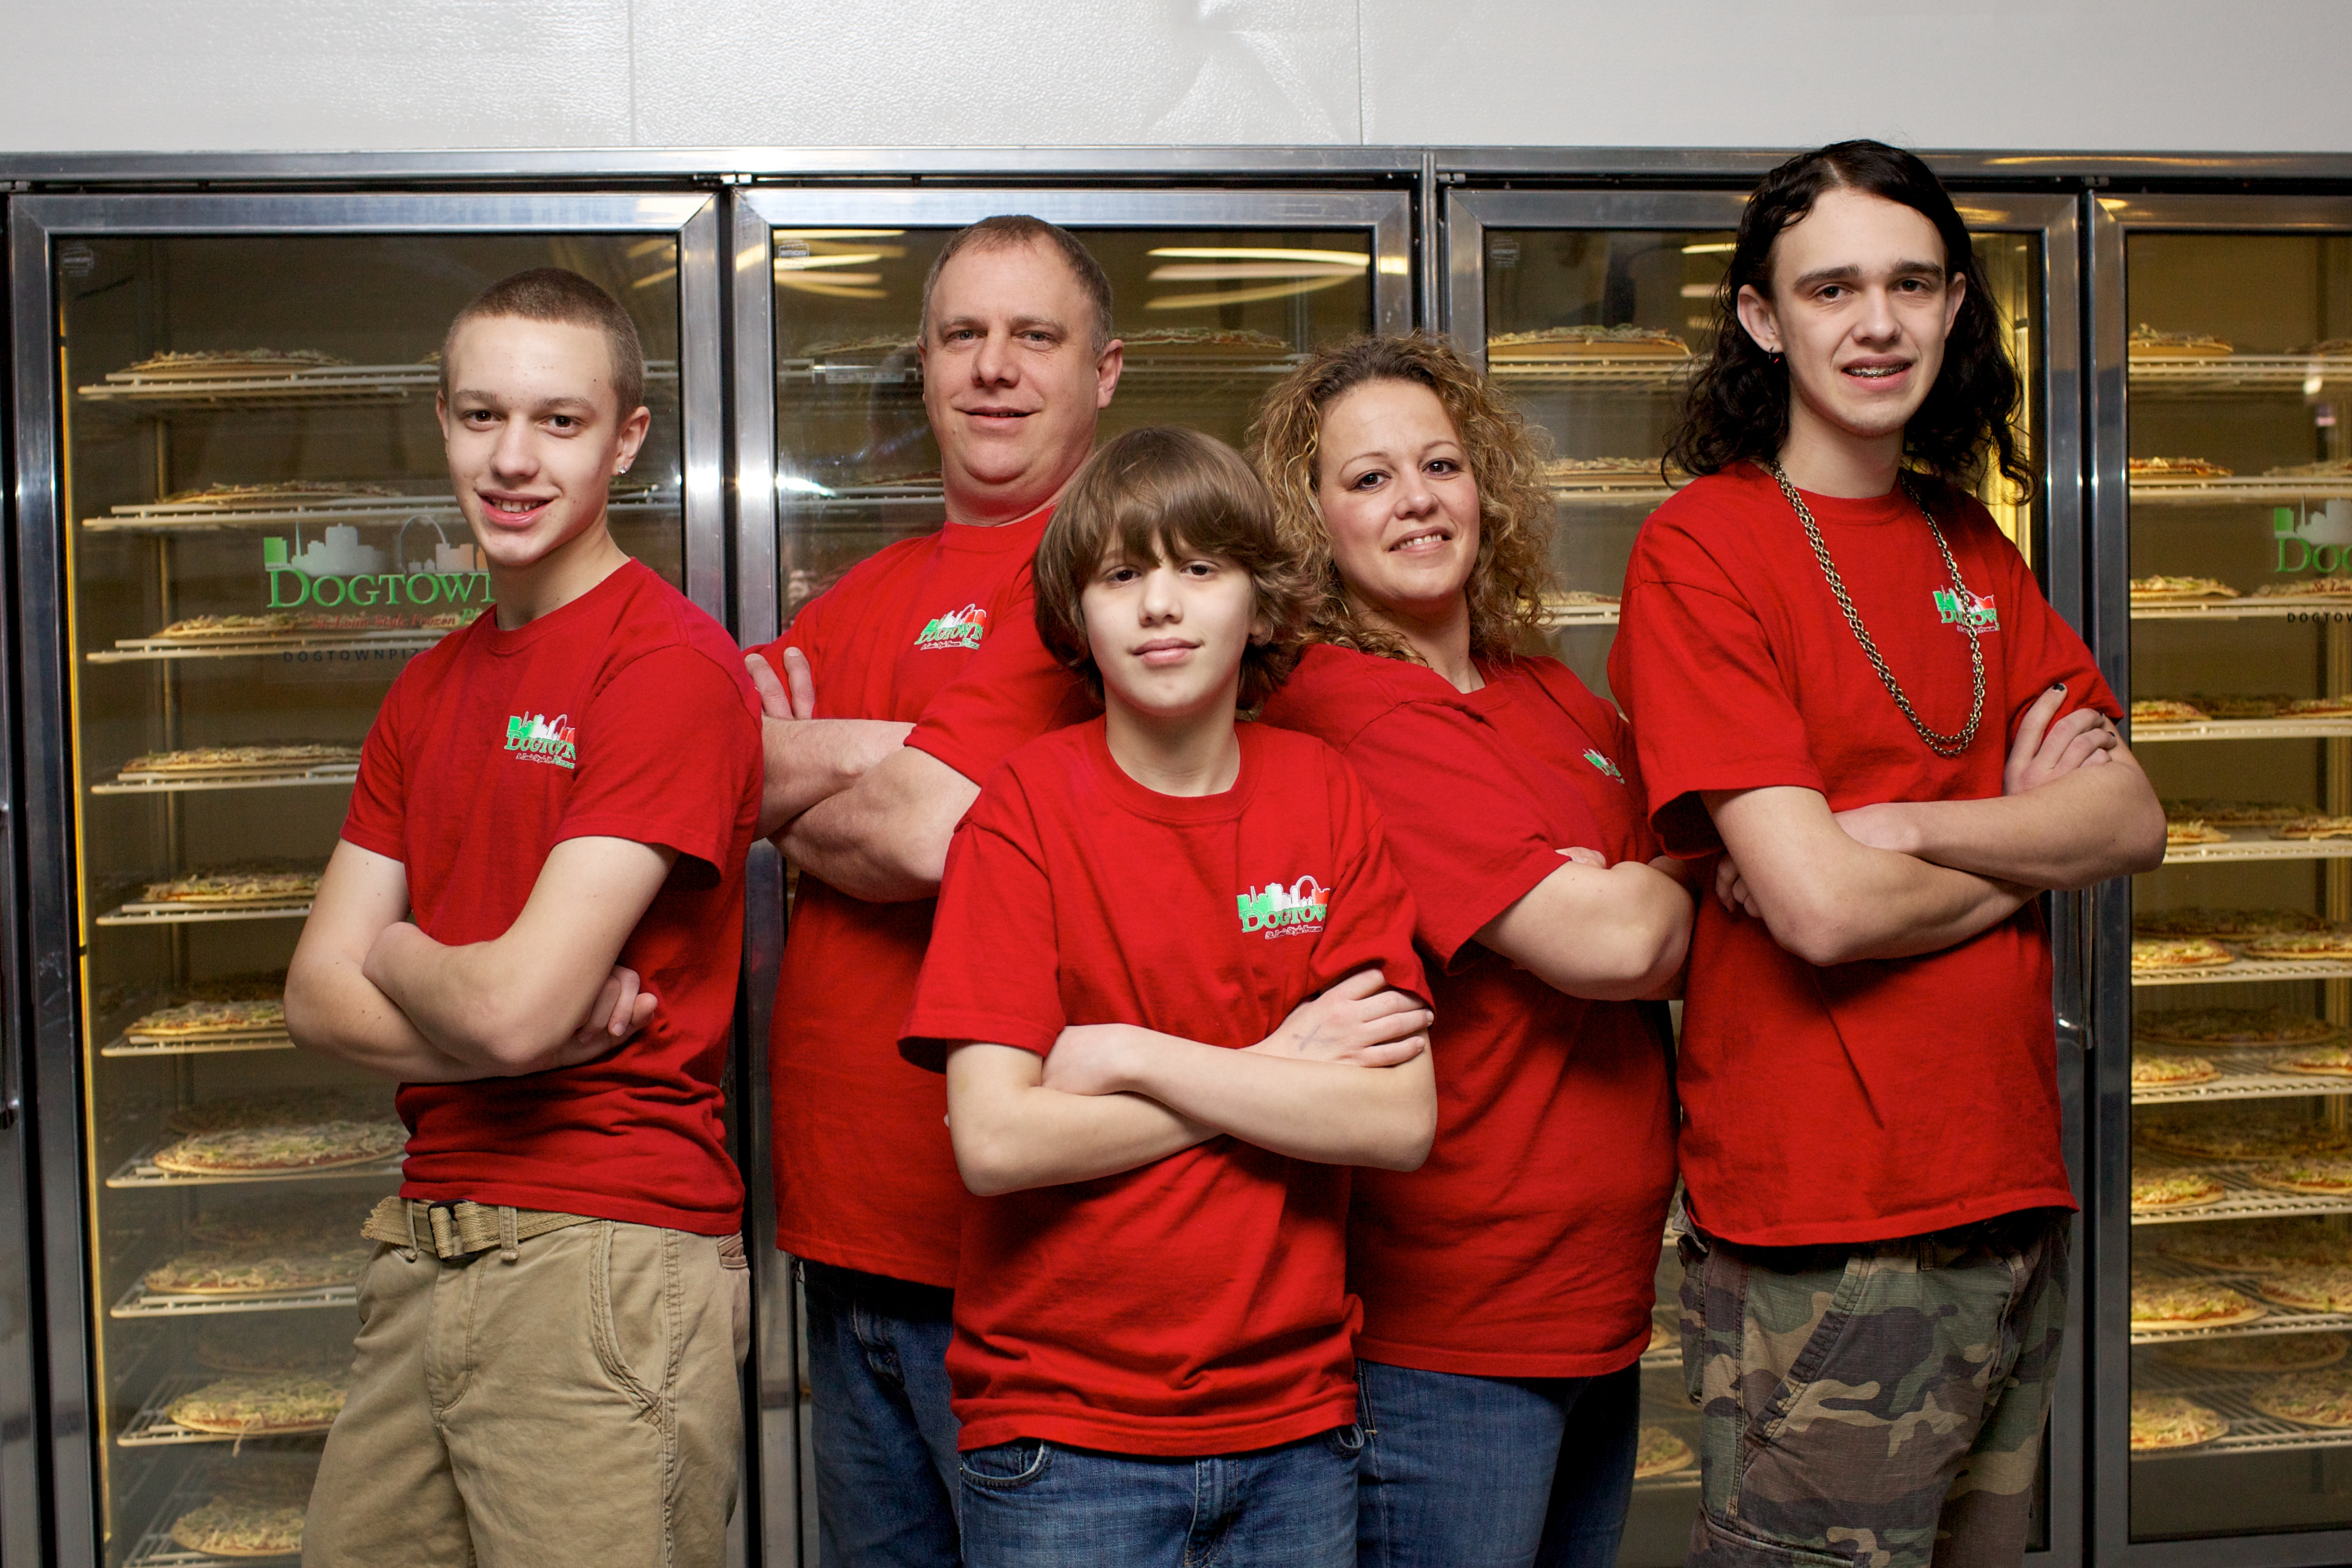 All In The Family: The Dogtown Pizza Way